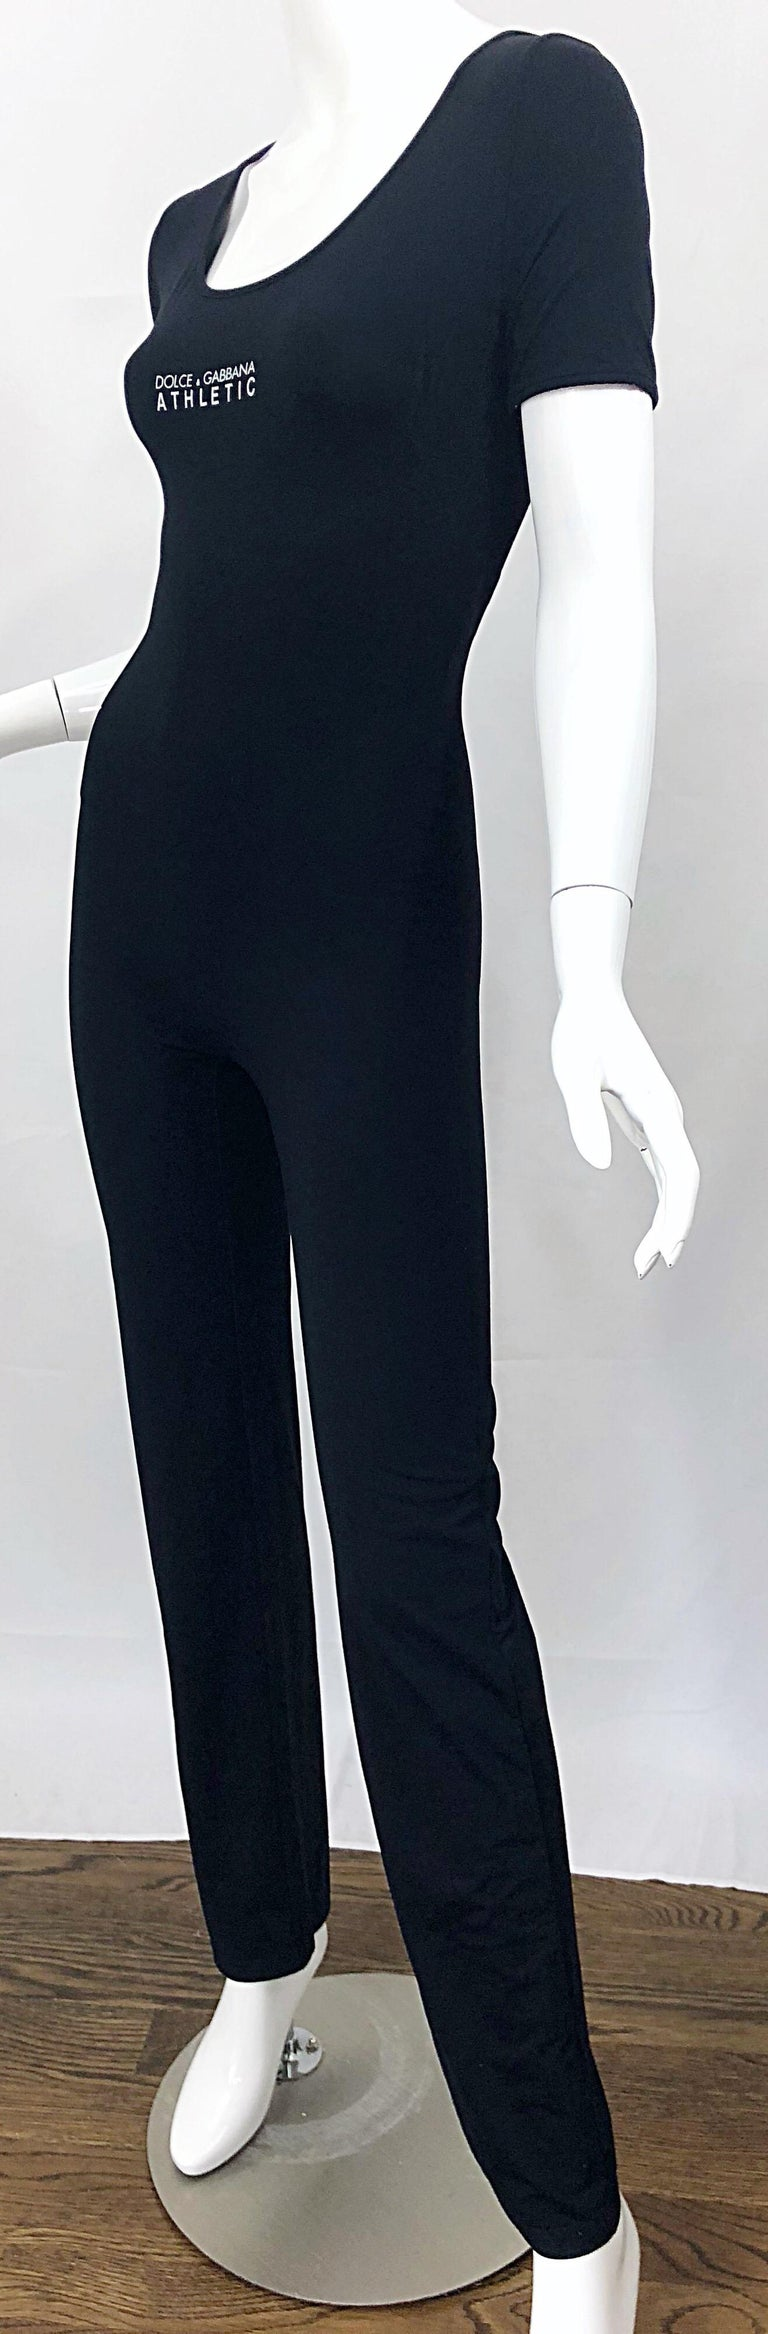 1990s Dolce & Gabbana Black and White Athletic One Piece Vintage 90s Jumpsuit For Sale 7